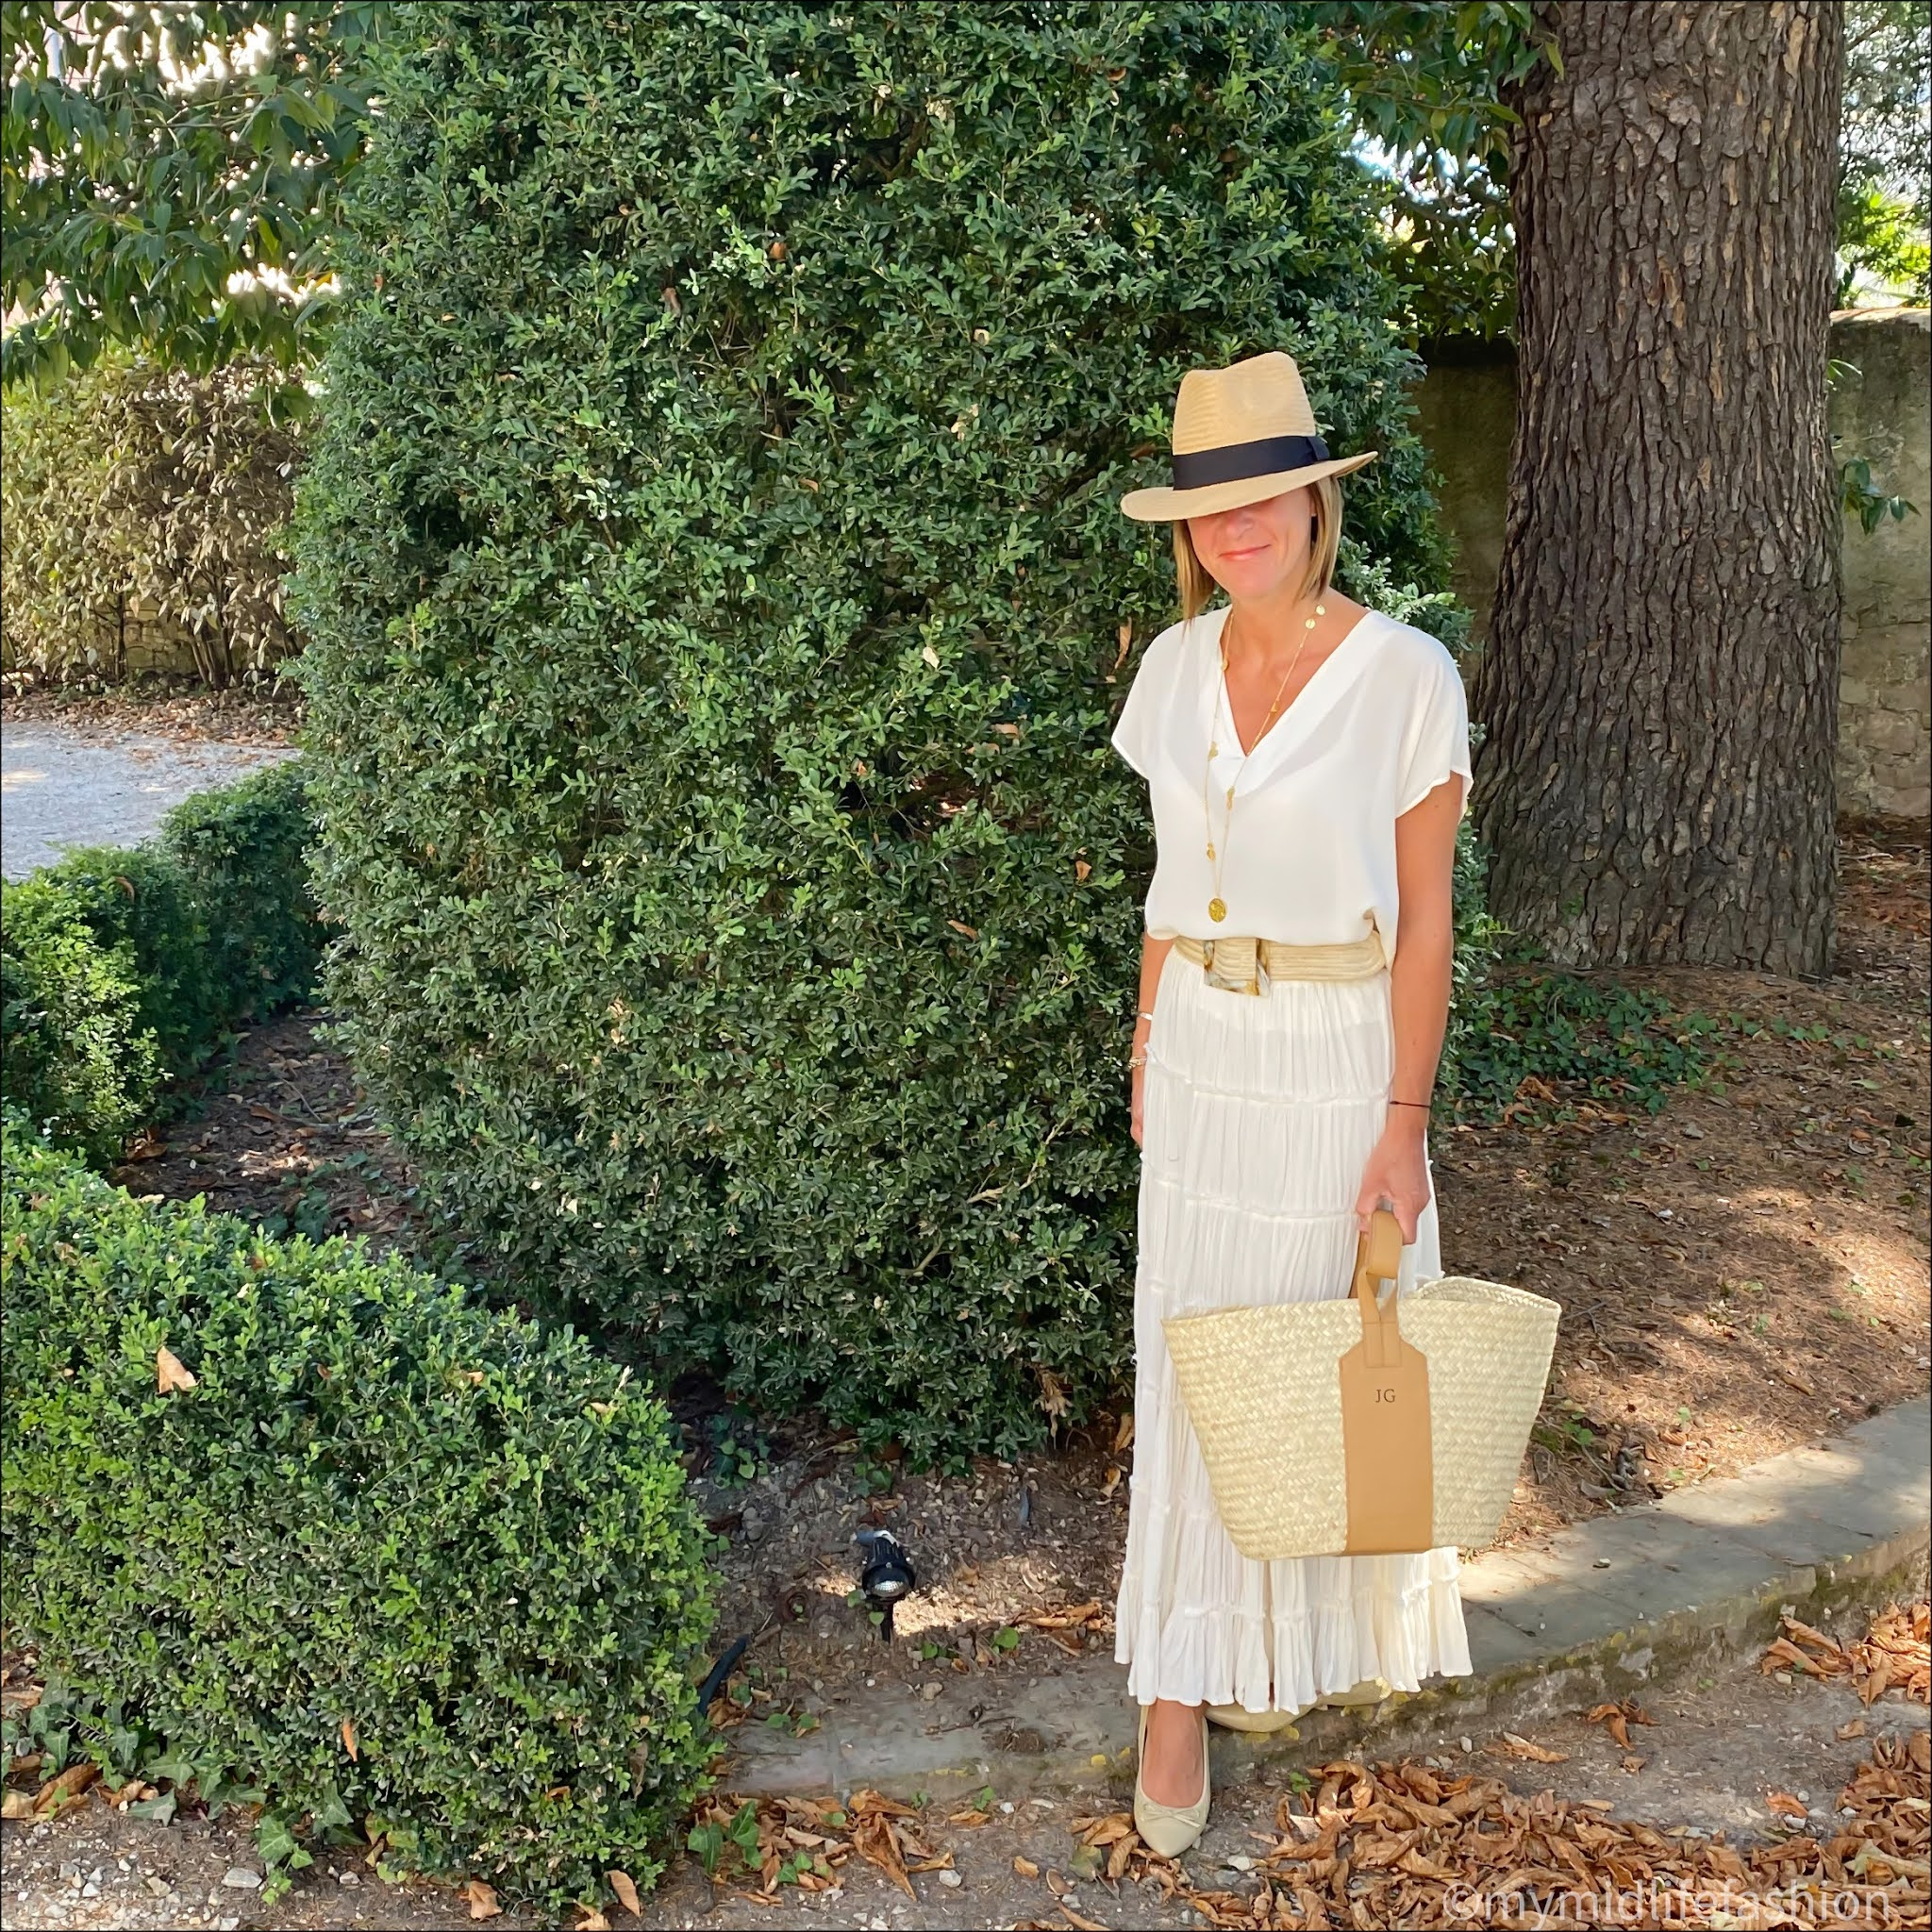 my midlife fashion, h and m Panama straw hat, Alexis silk top, ashiana gold coin necklace, rae feather grace monogrammed basket, Ralph Lauren tiered maxi skirt, butterfly twists holly ballet pumps